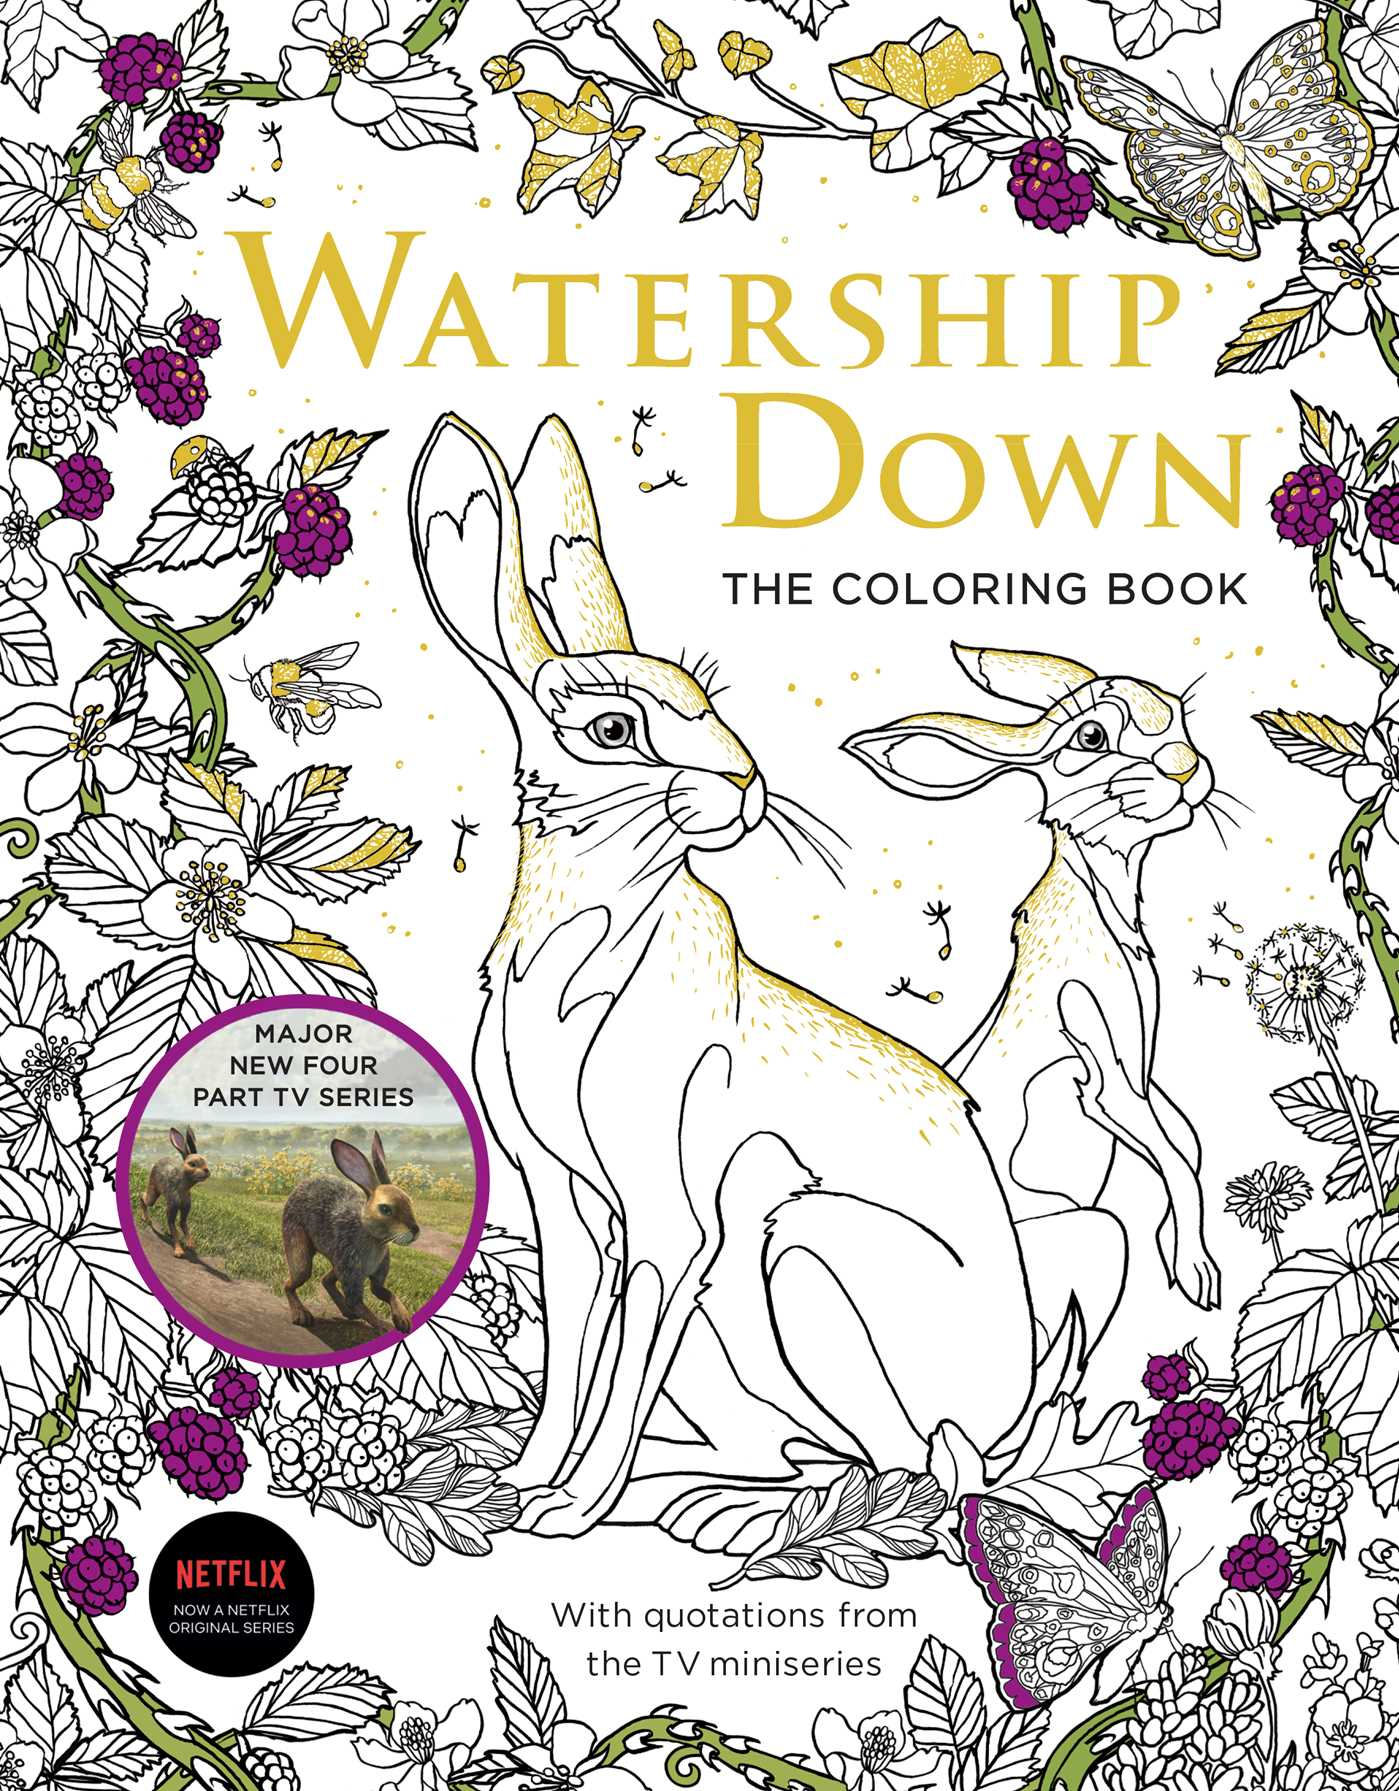 Watership Down The Coloring Book